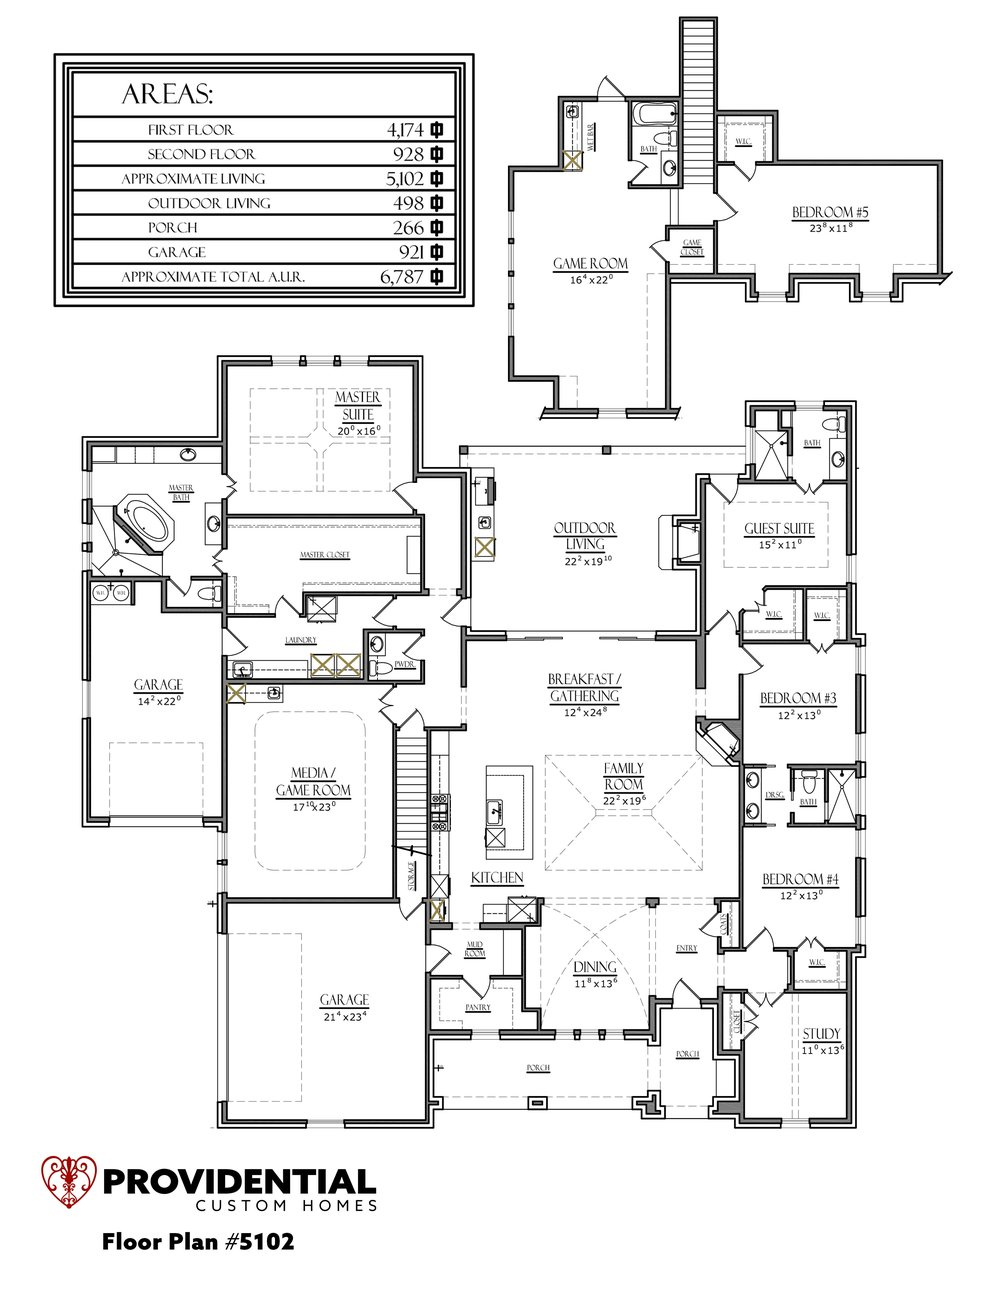 The FLOOR PLAN #5102.jpg